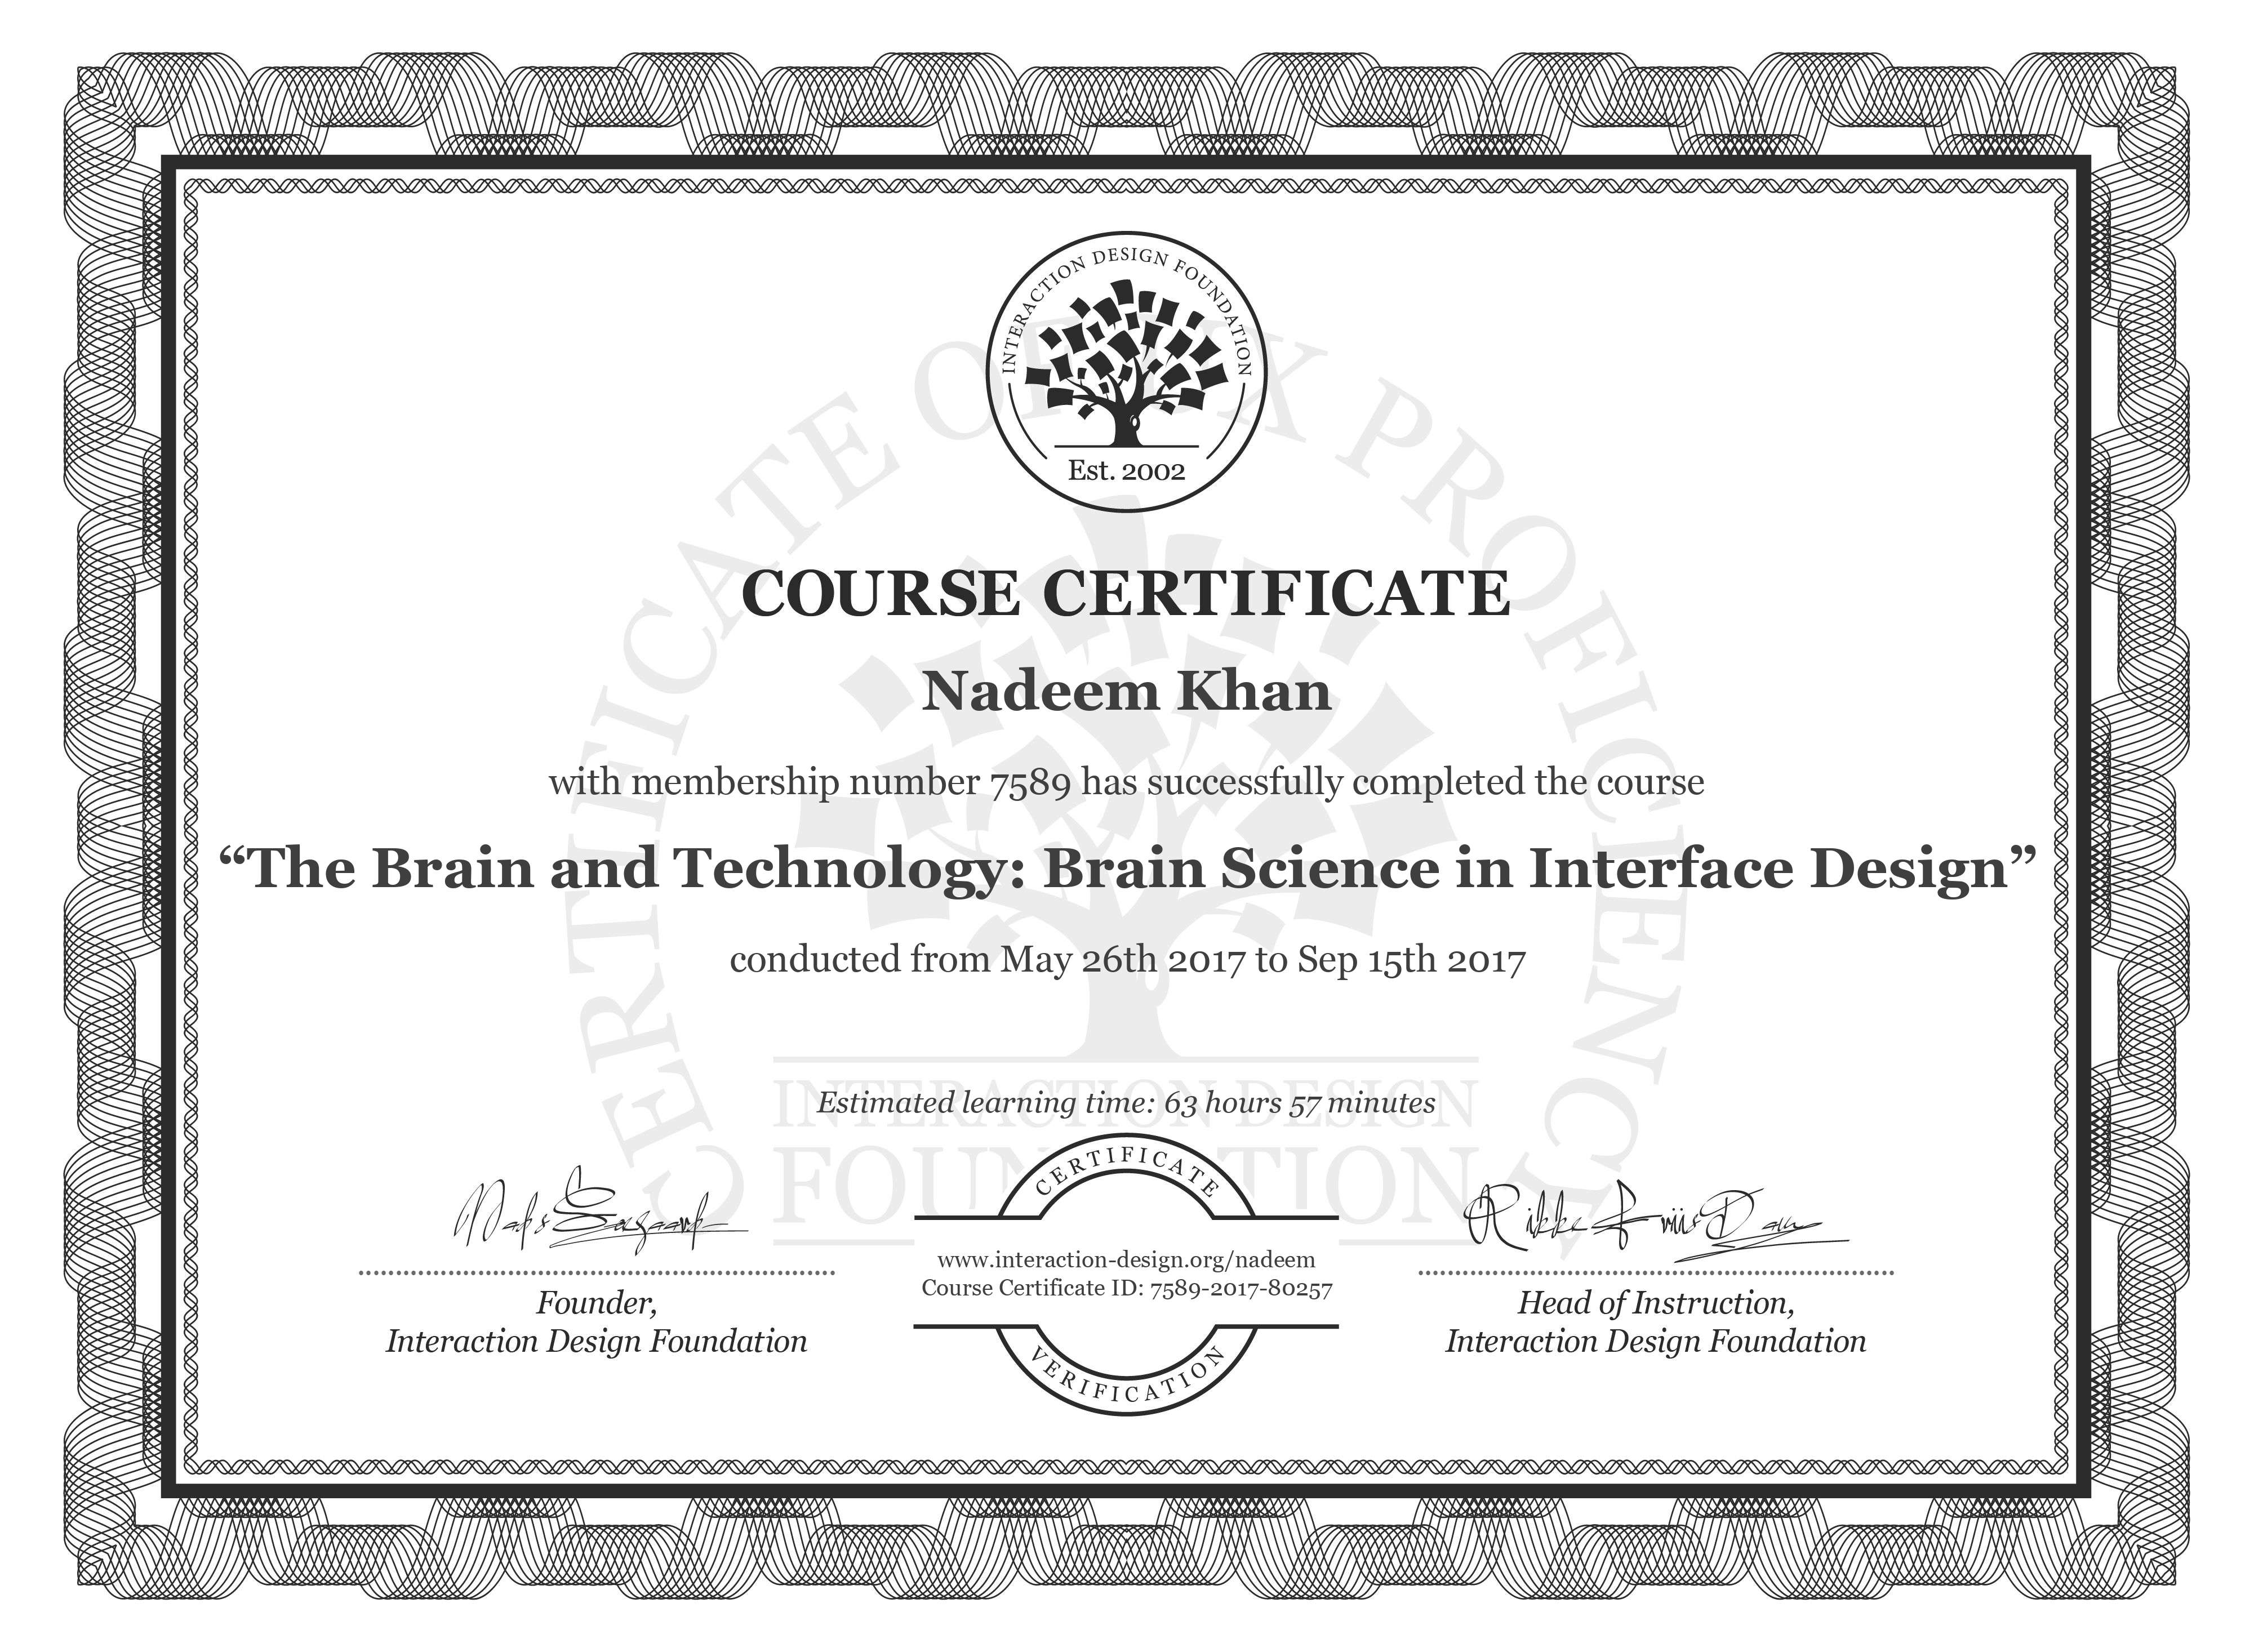 Nadeem Khan: Course Certificate - The Brain and Technology: Brain Science in Interface Design